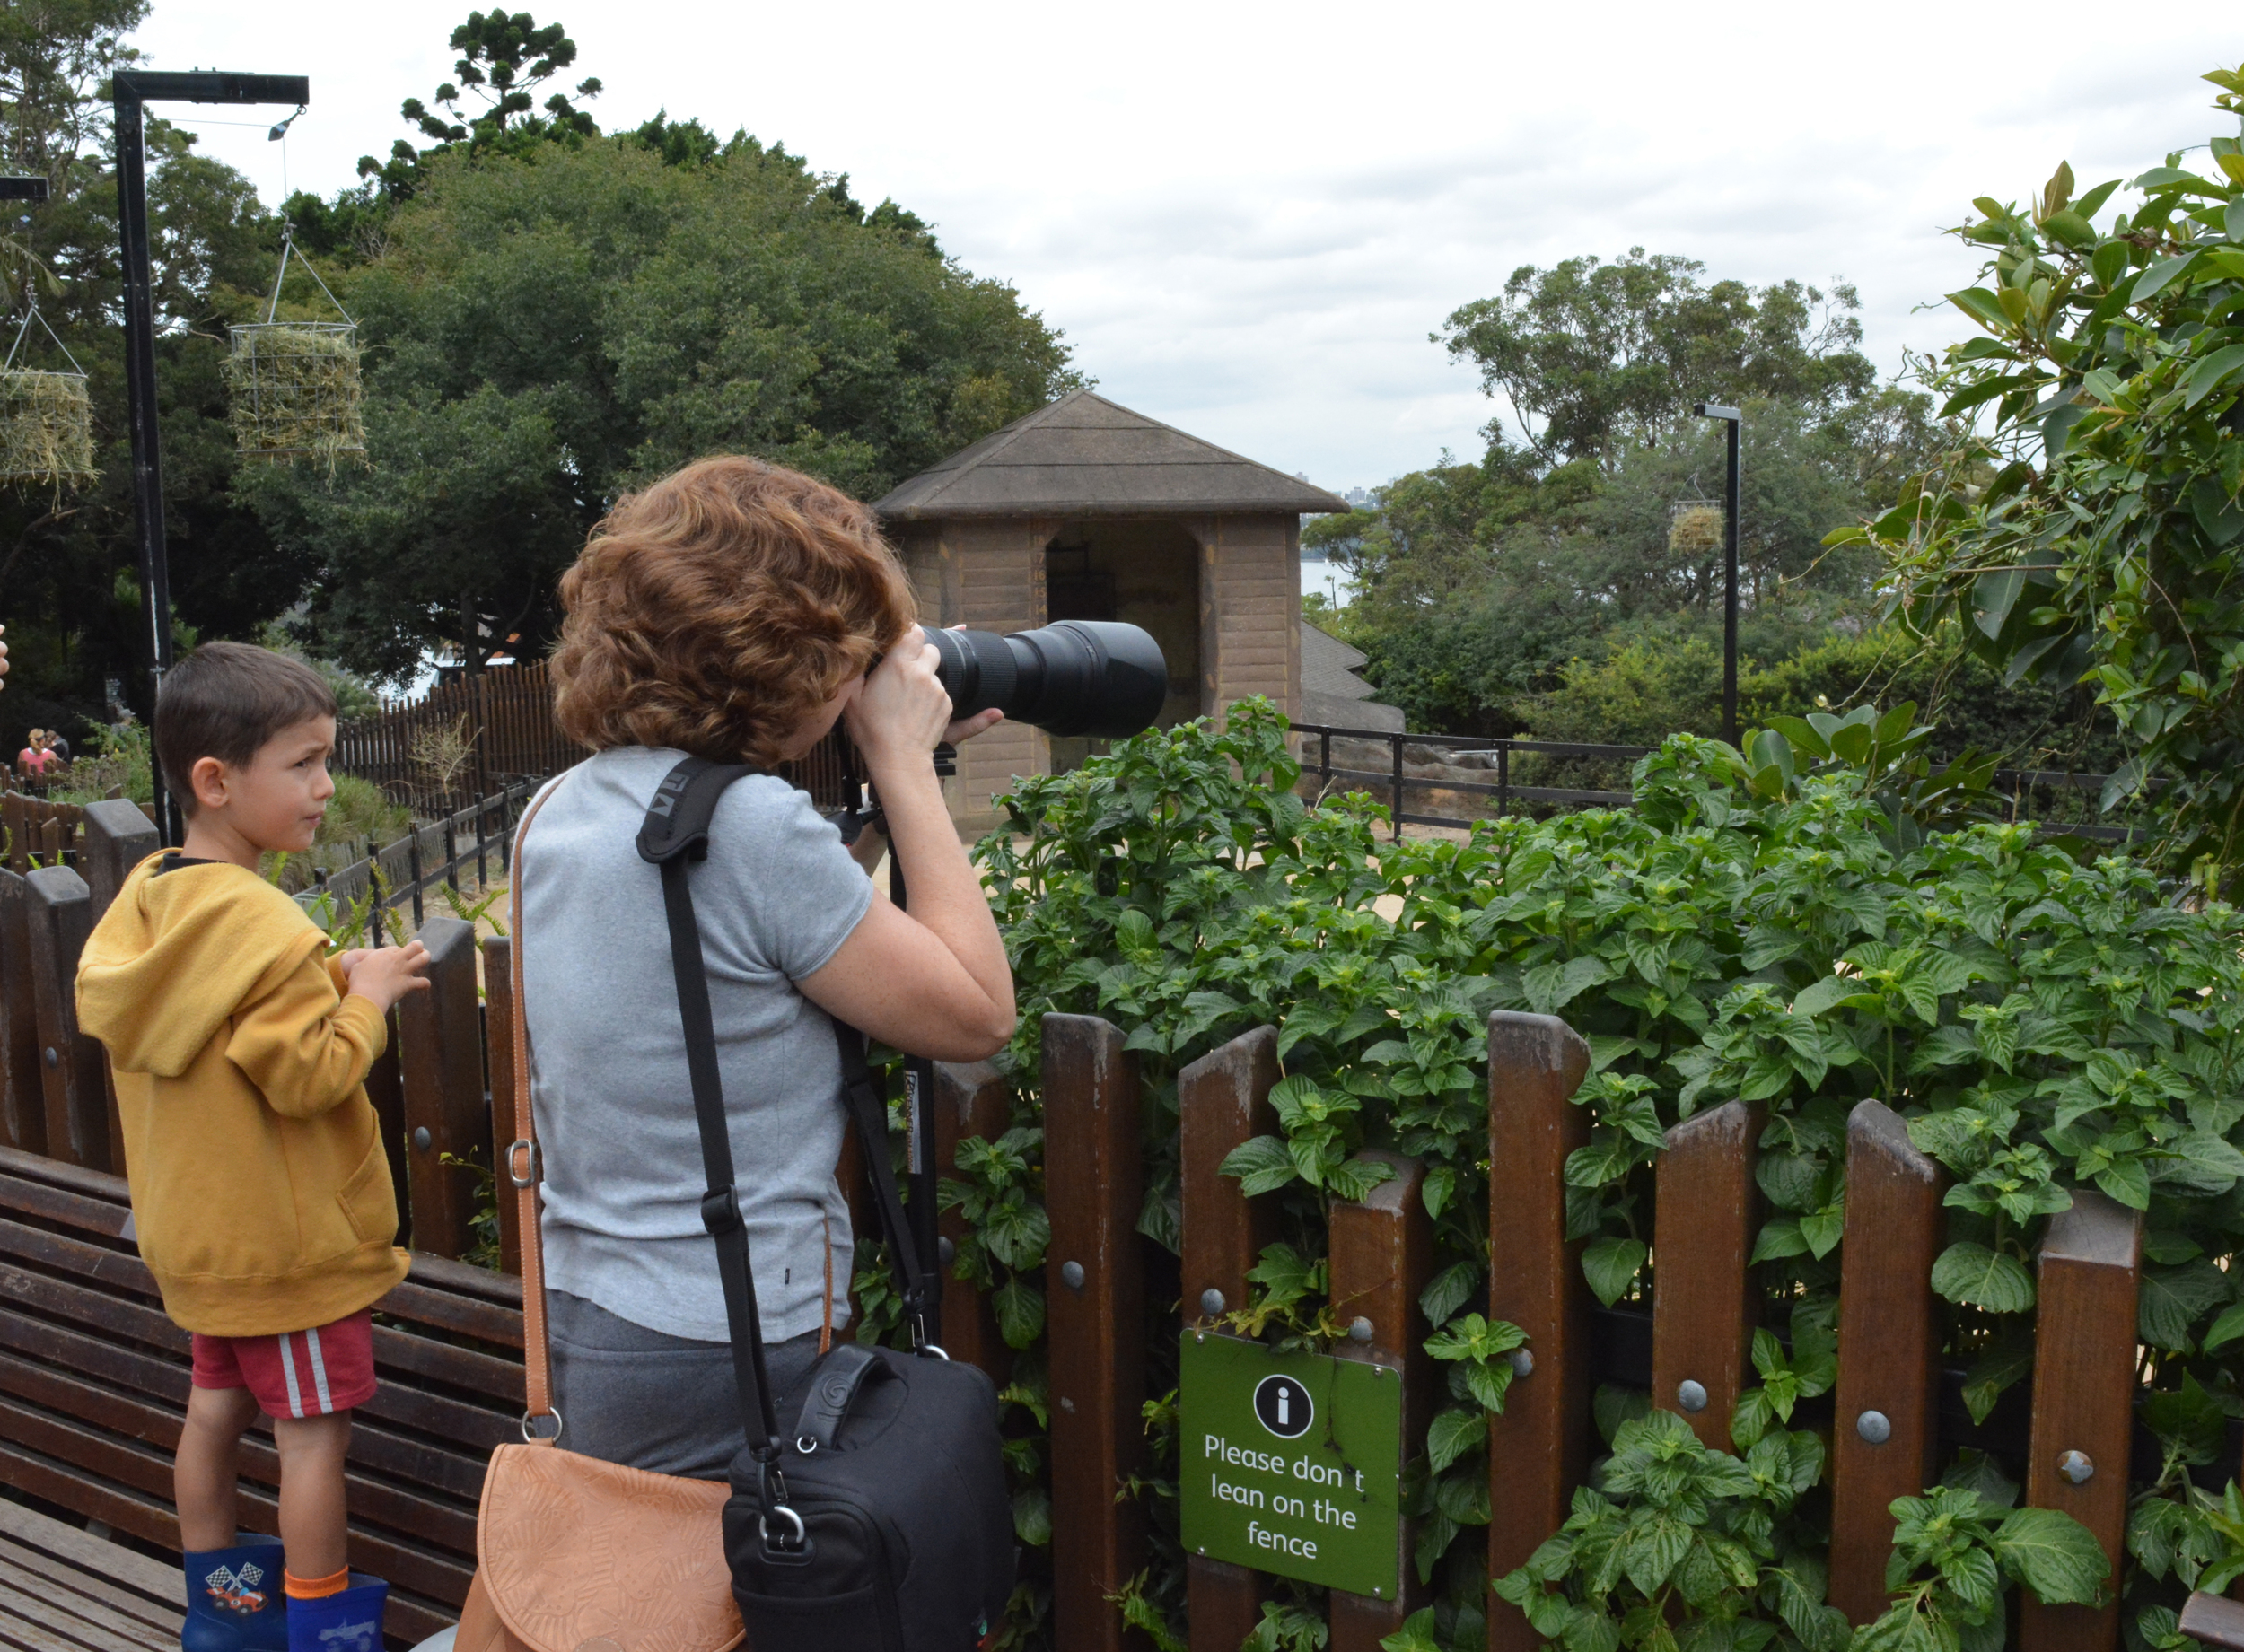 Taking some photos of the giraffes.